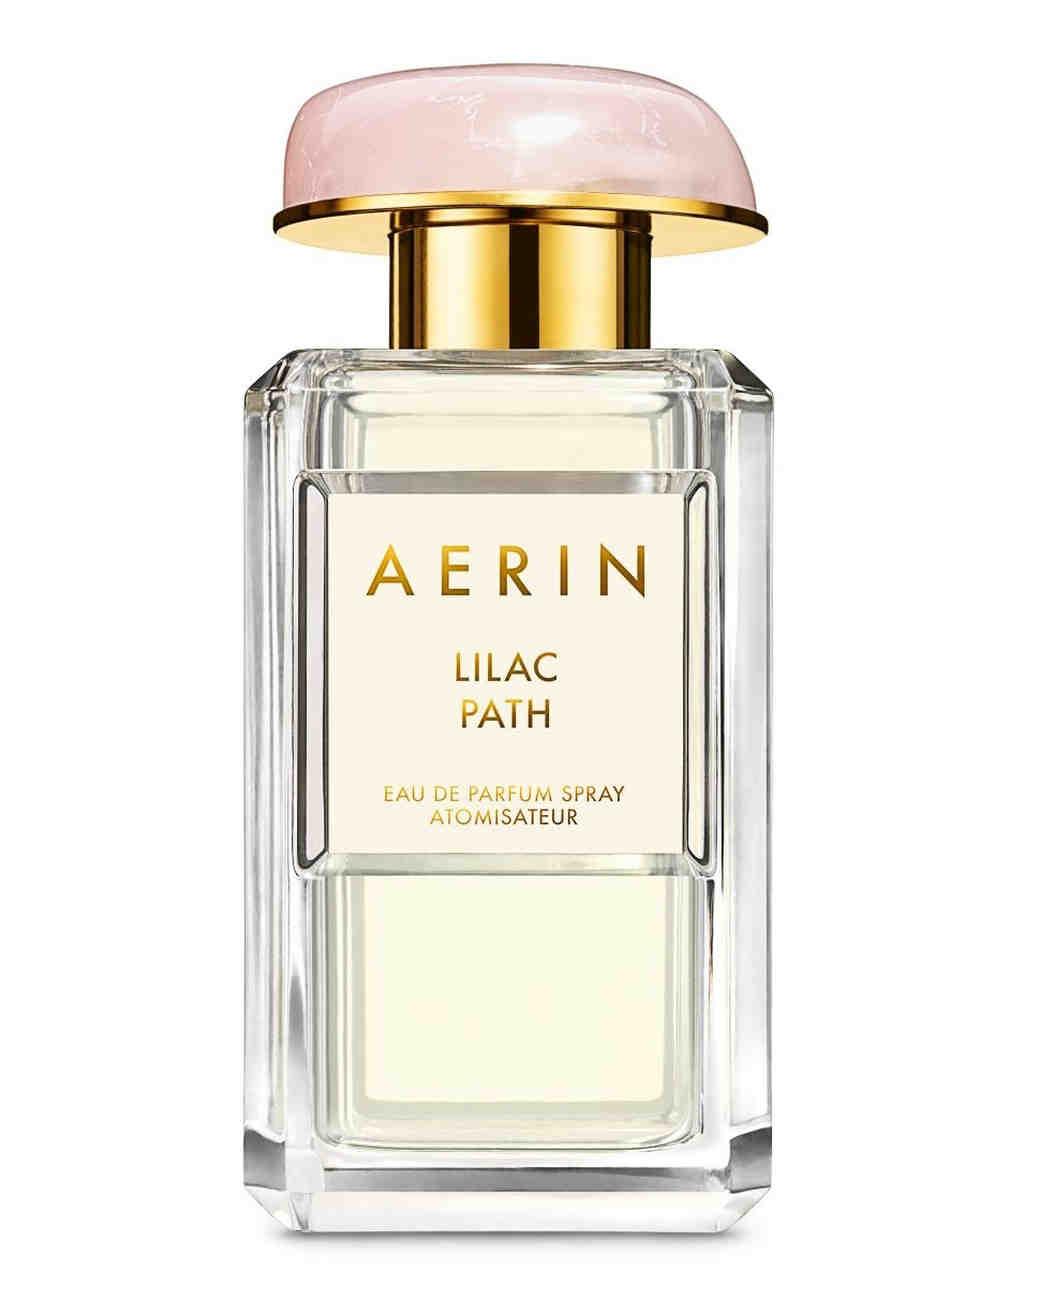 fragrances-summer-2014-aerin-lilac-path-0714.jpg